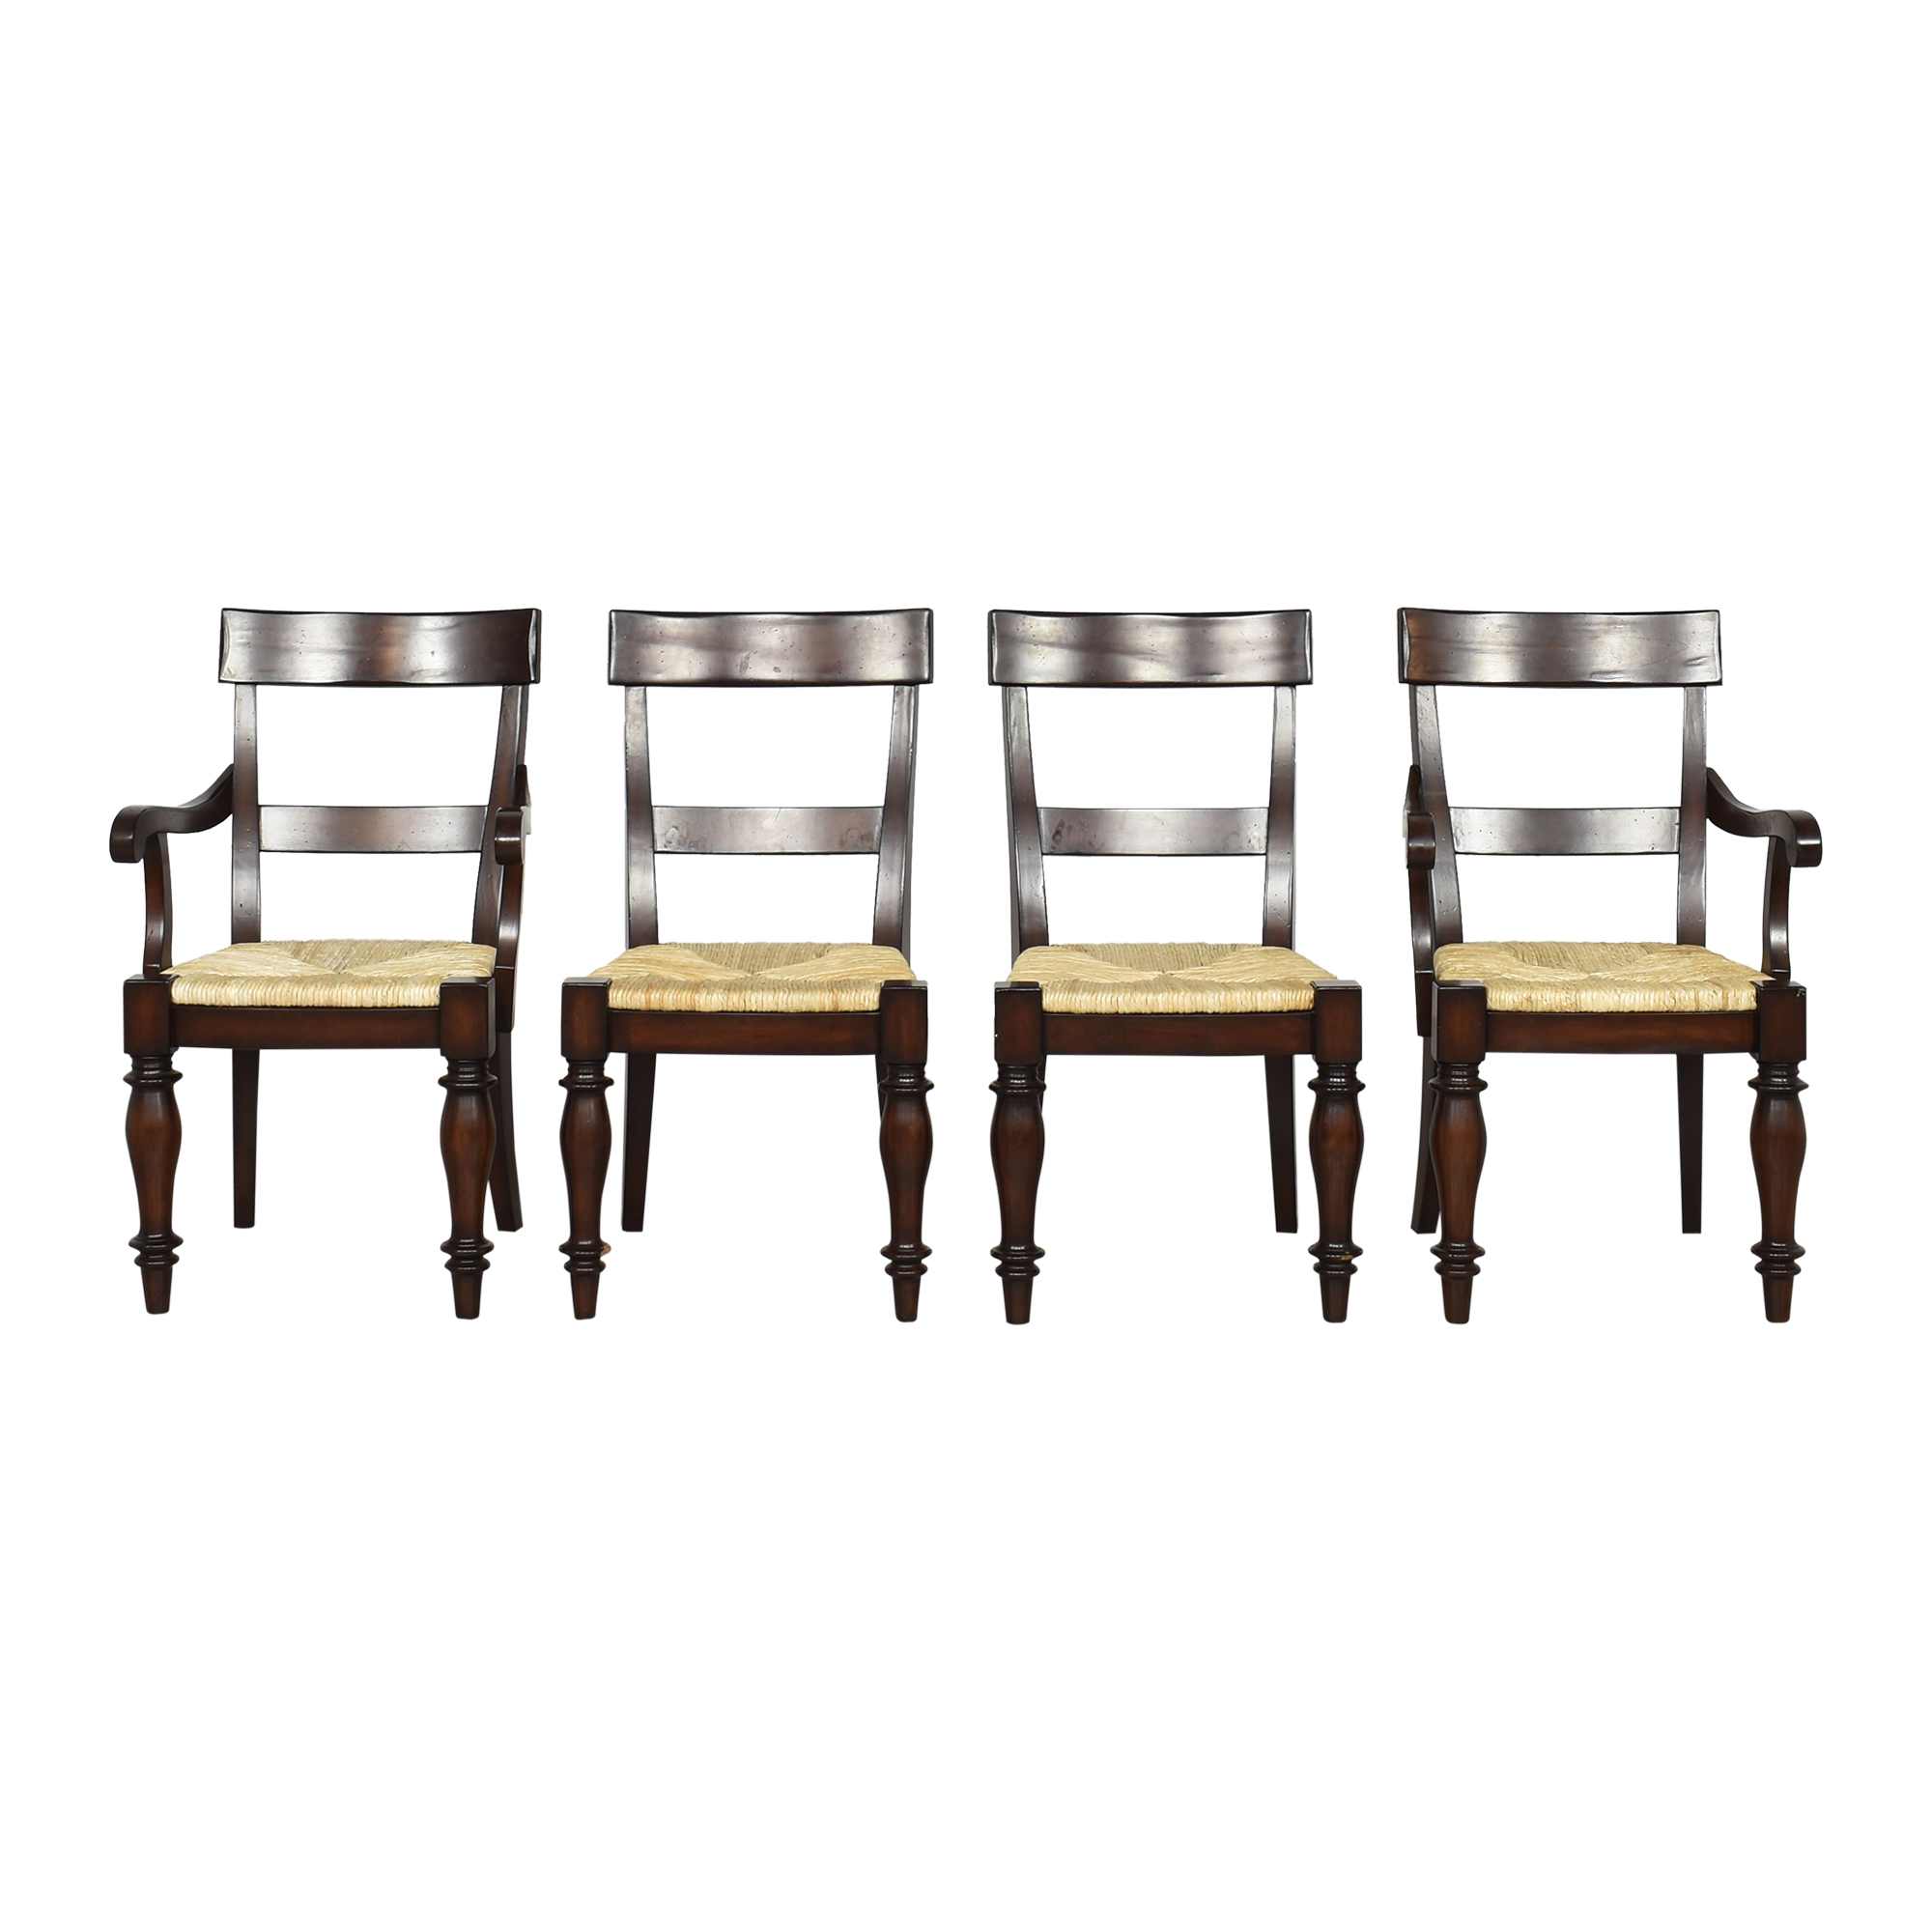 Pottery Barn Pottery Barn Montego Dining Chairs Dining Chairs